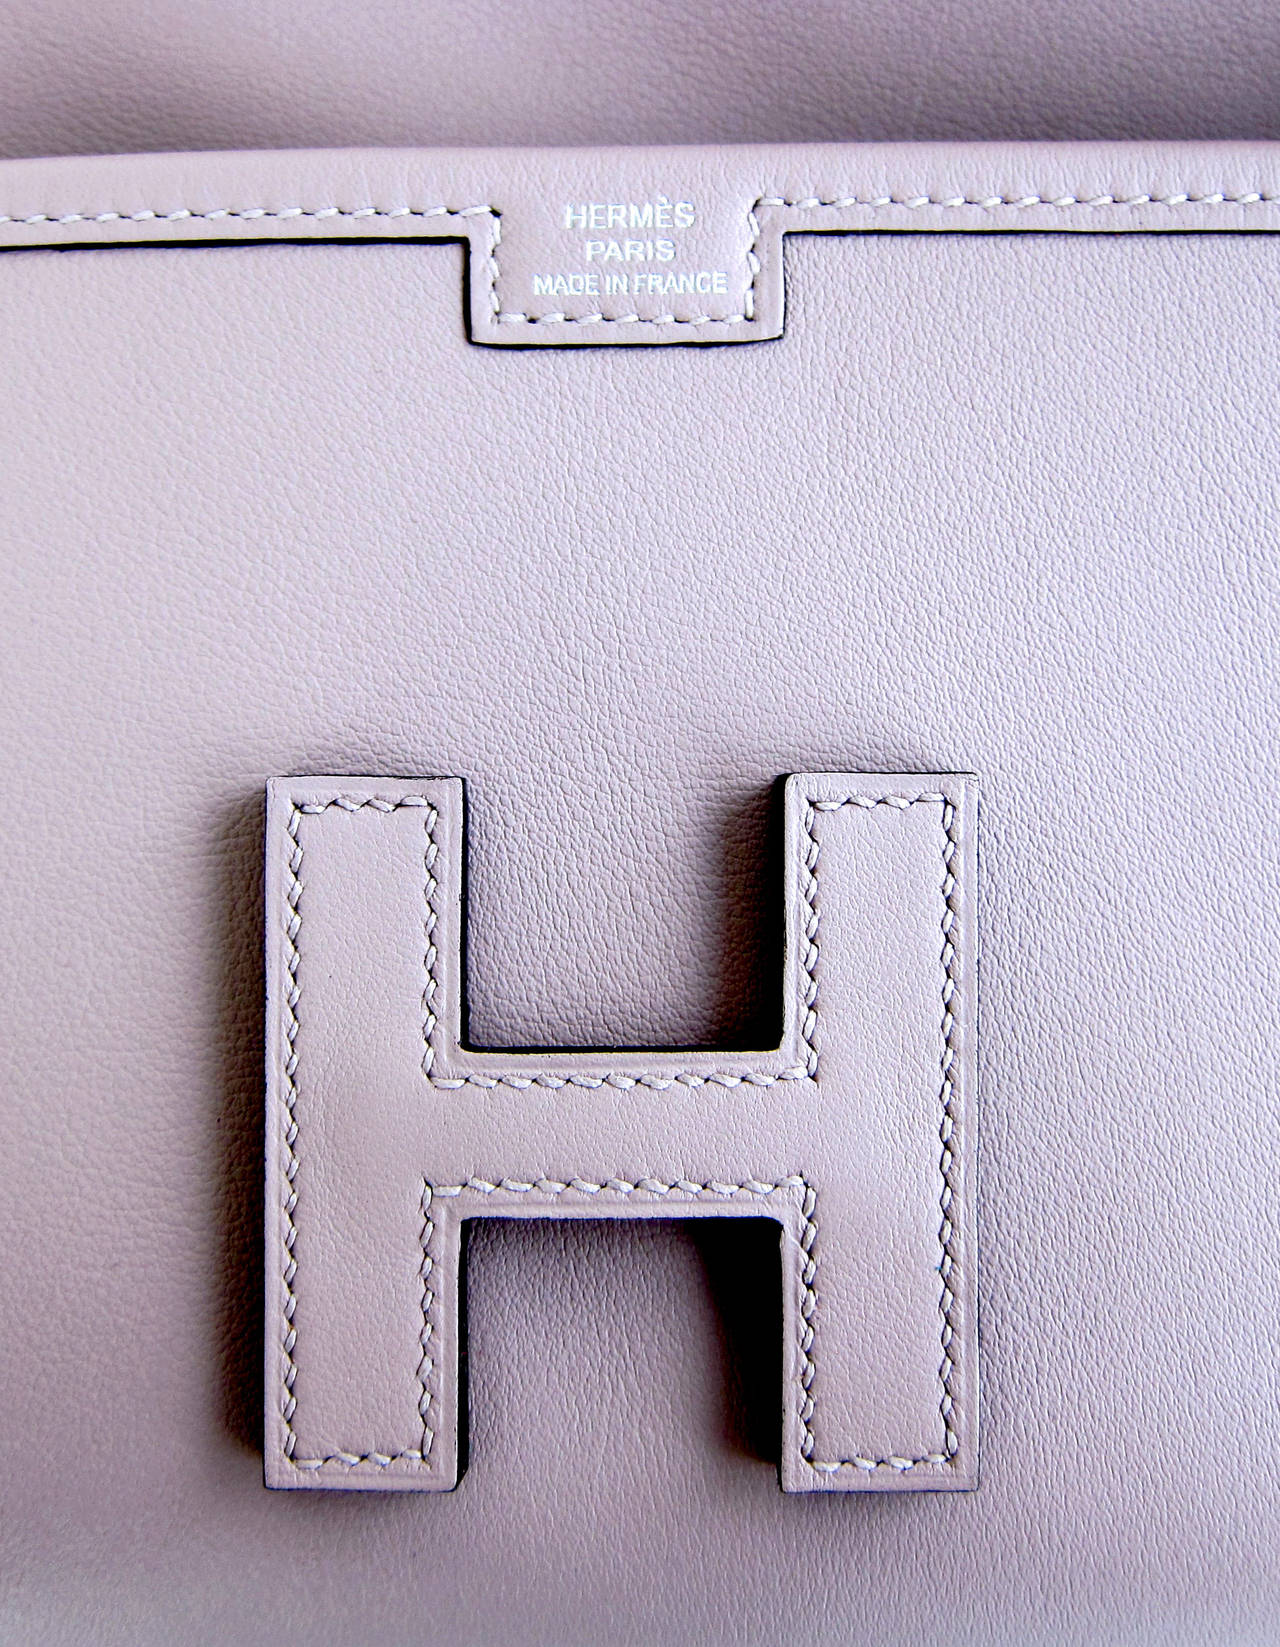 HERMES Glycine Lilac Jige Swift Elan Leather Clutch 29cm So Pretty! 7